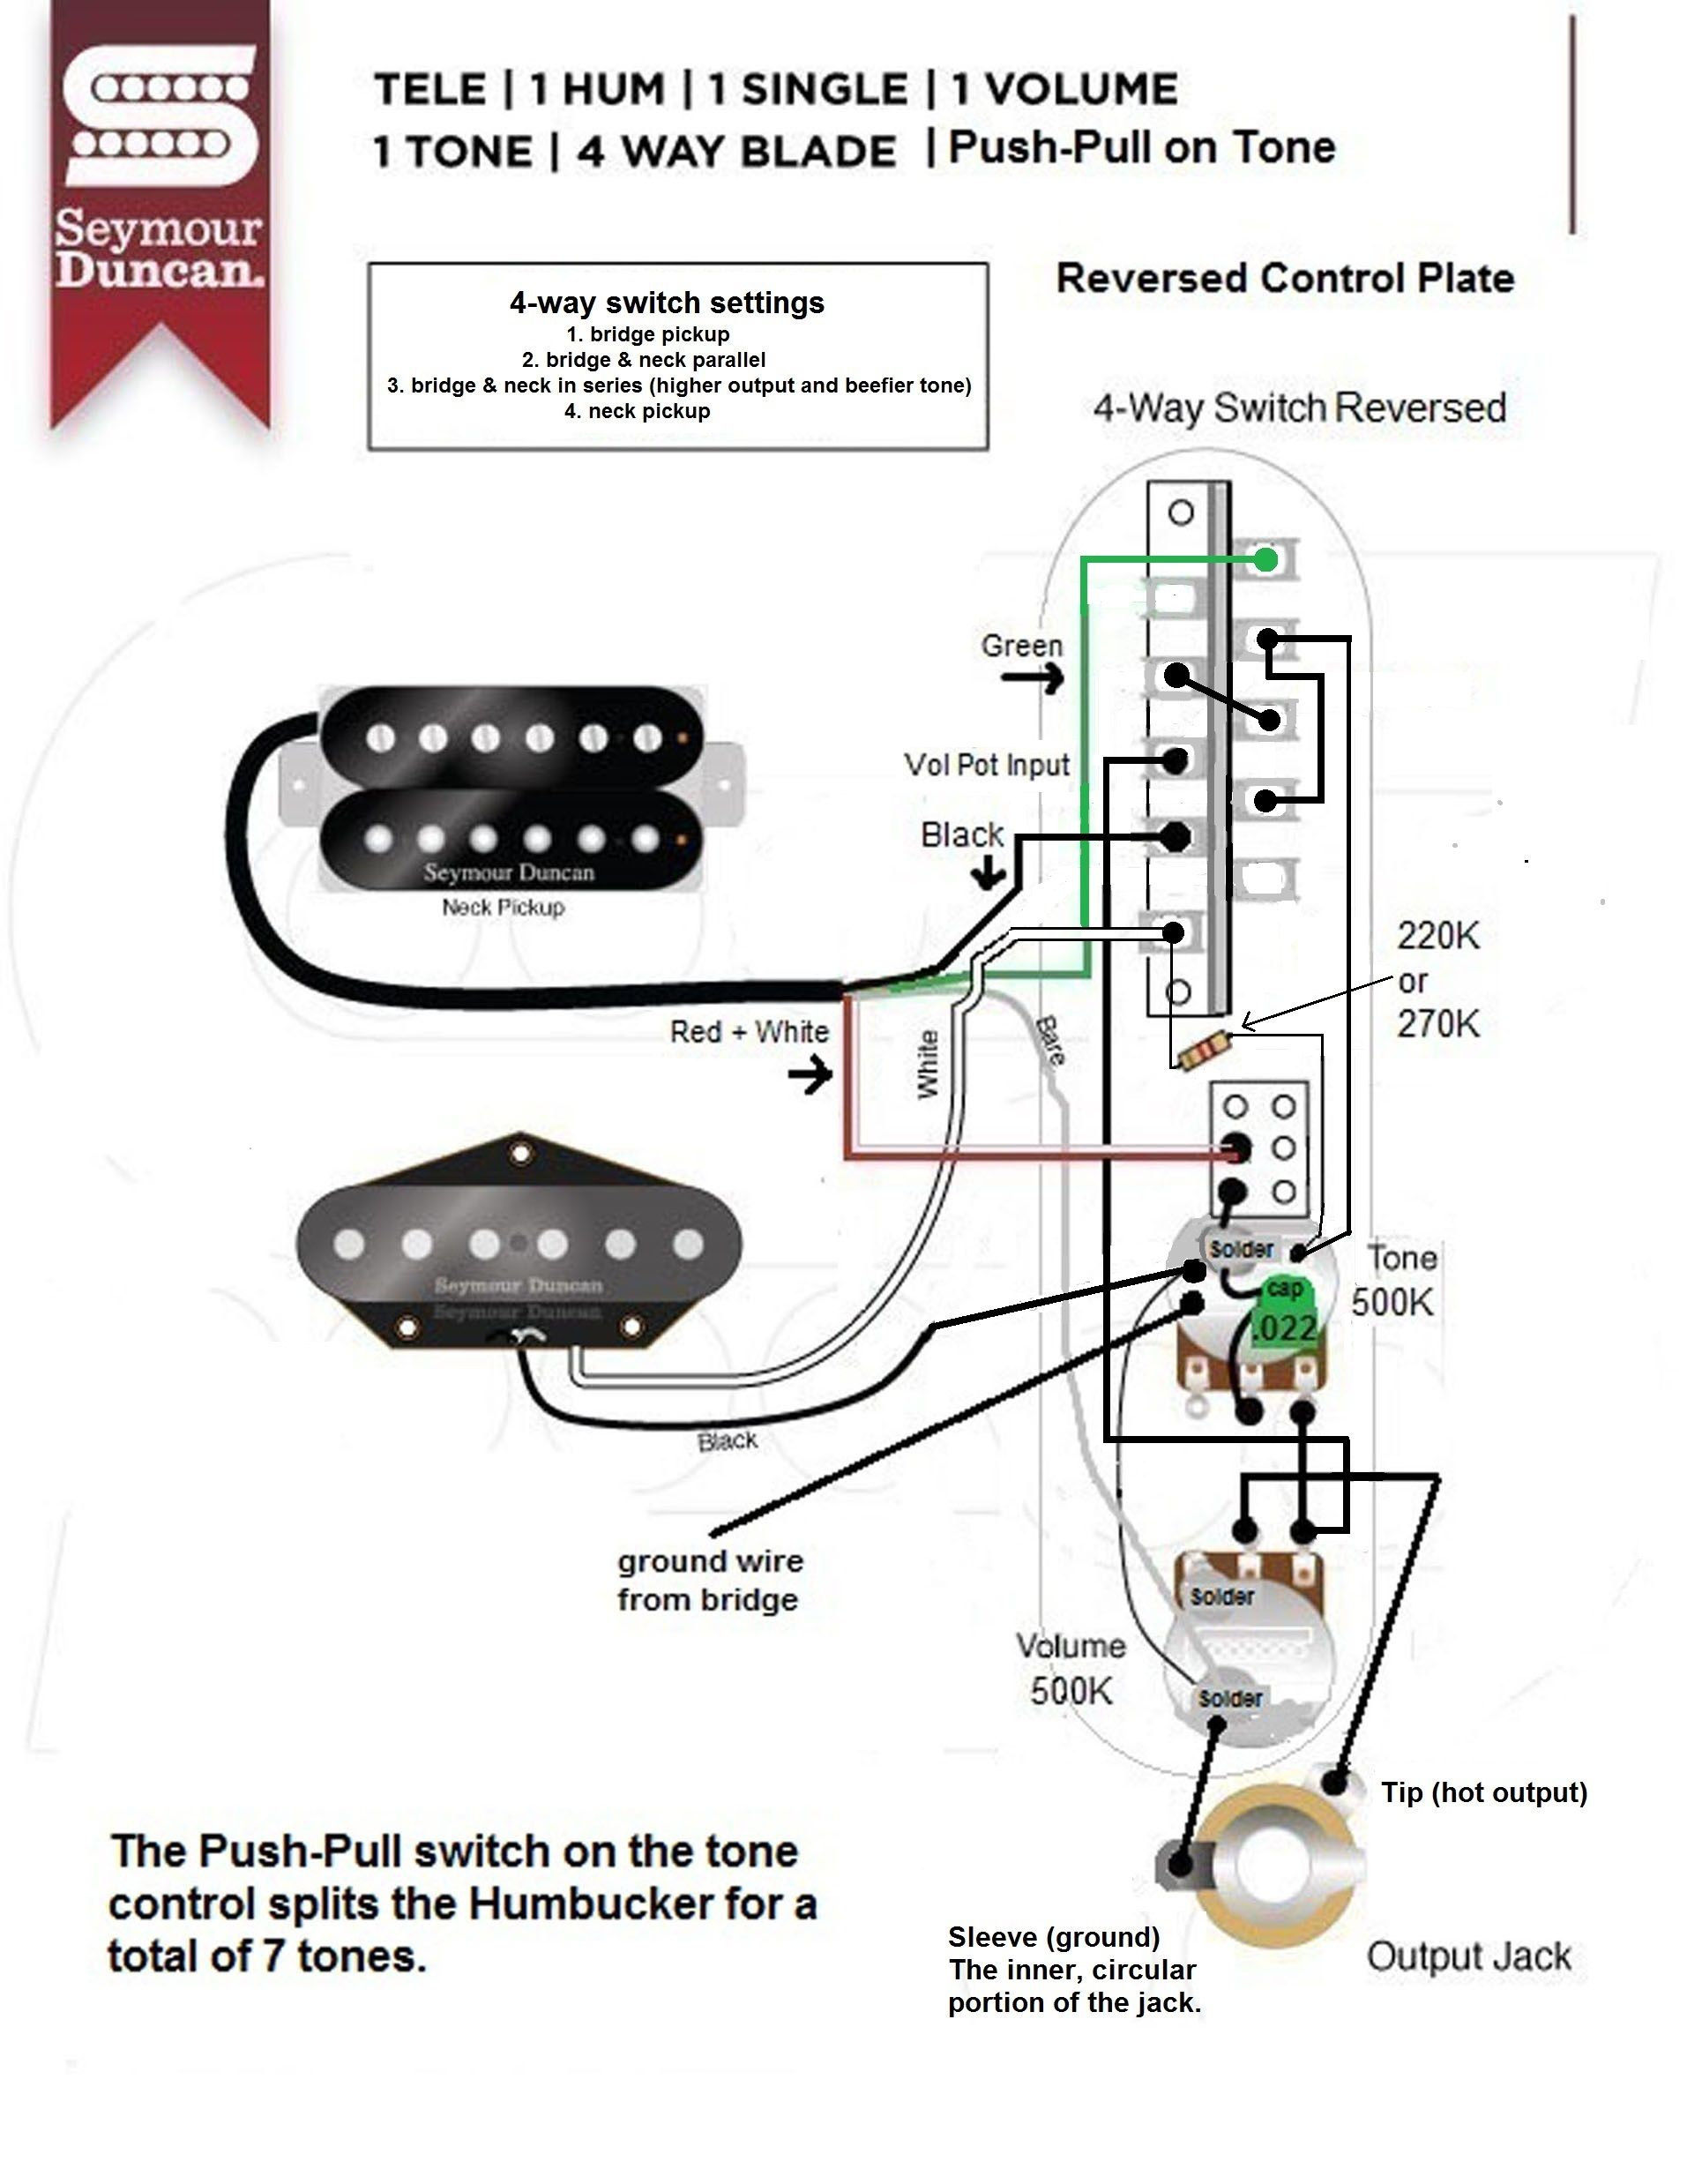 In case anyone is interested, here's the wiring diagram. Really cool wiring  scheme.